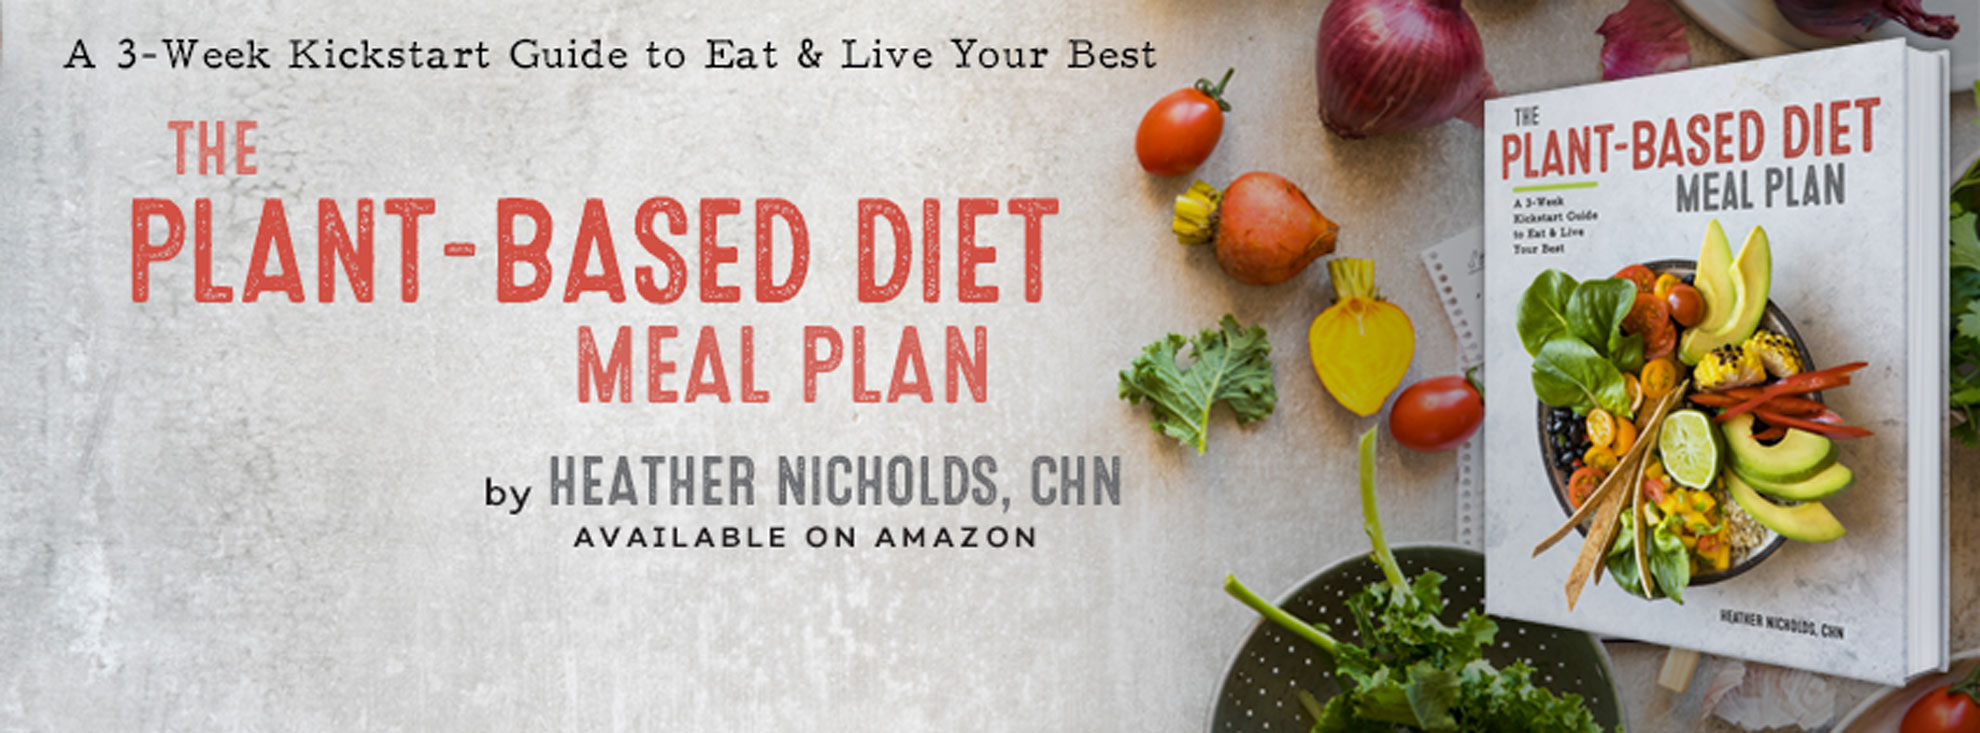 NEW Book by @heathernicholds Certified Holistic Nutritionist - The Plant-Based Diet Meal Plan: A 3 Week Kickstart Guide to Eat & Live Your Best